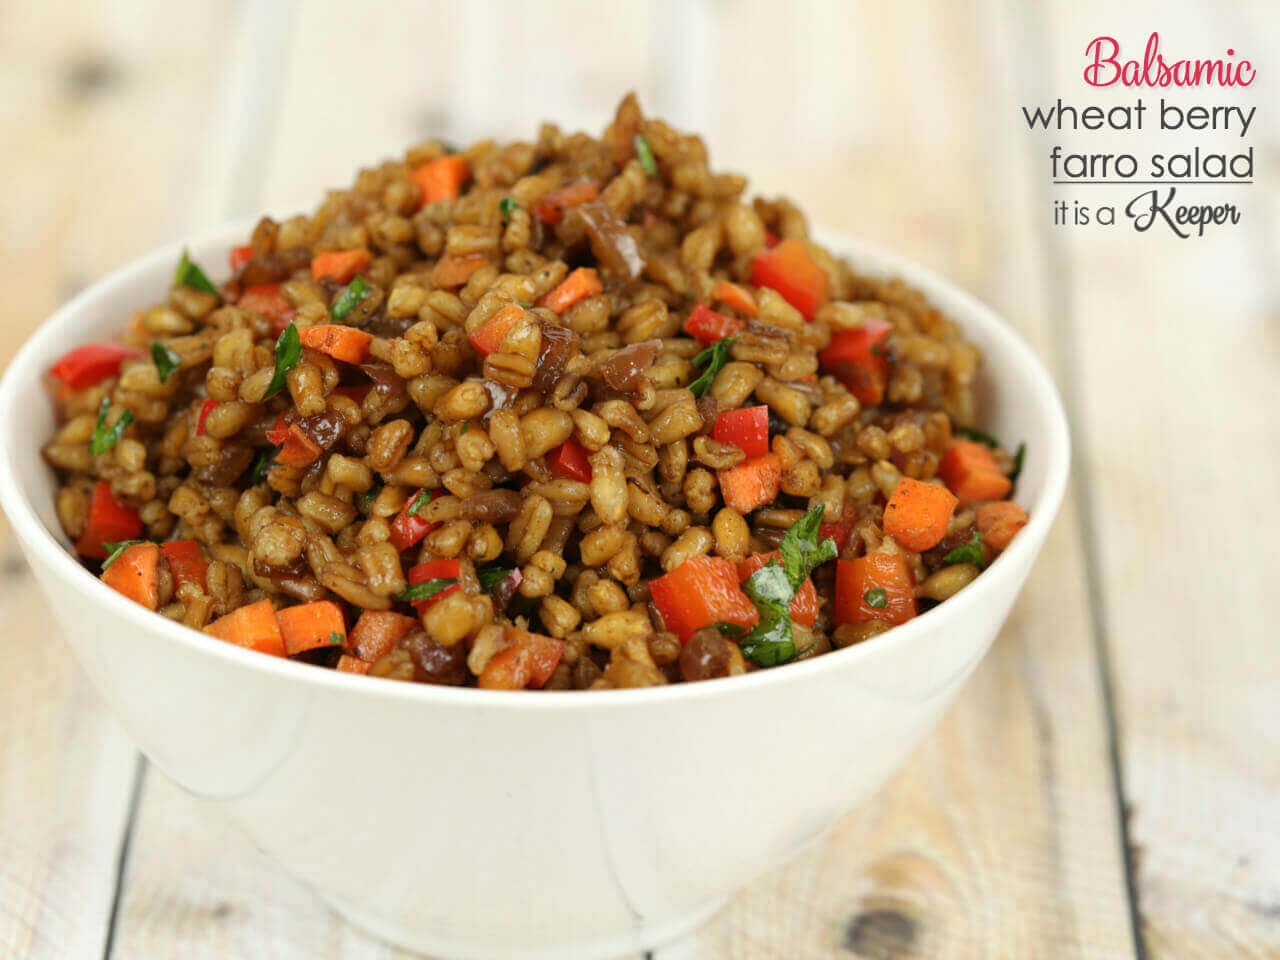 Balsamic Wheatberry Farro Salad - this healthy grain salad recipe is easy to make when you use my trick